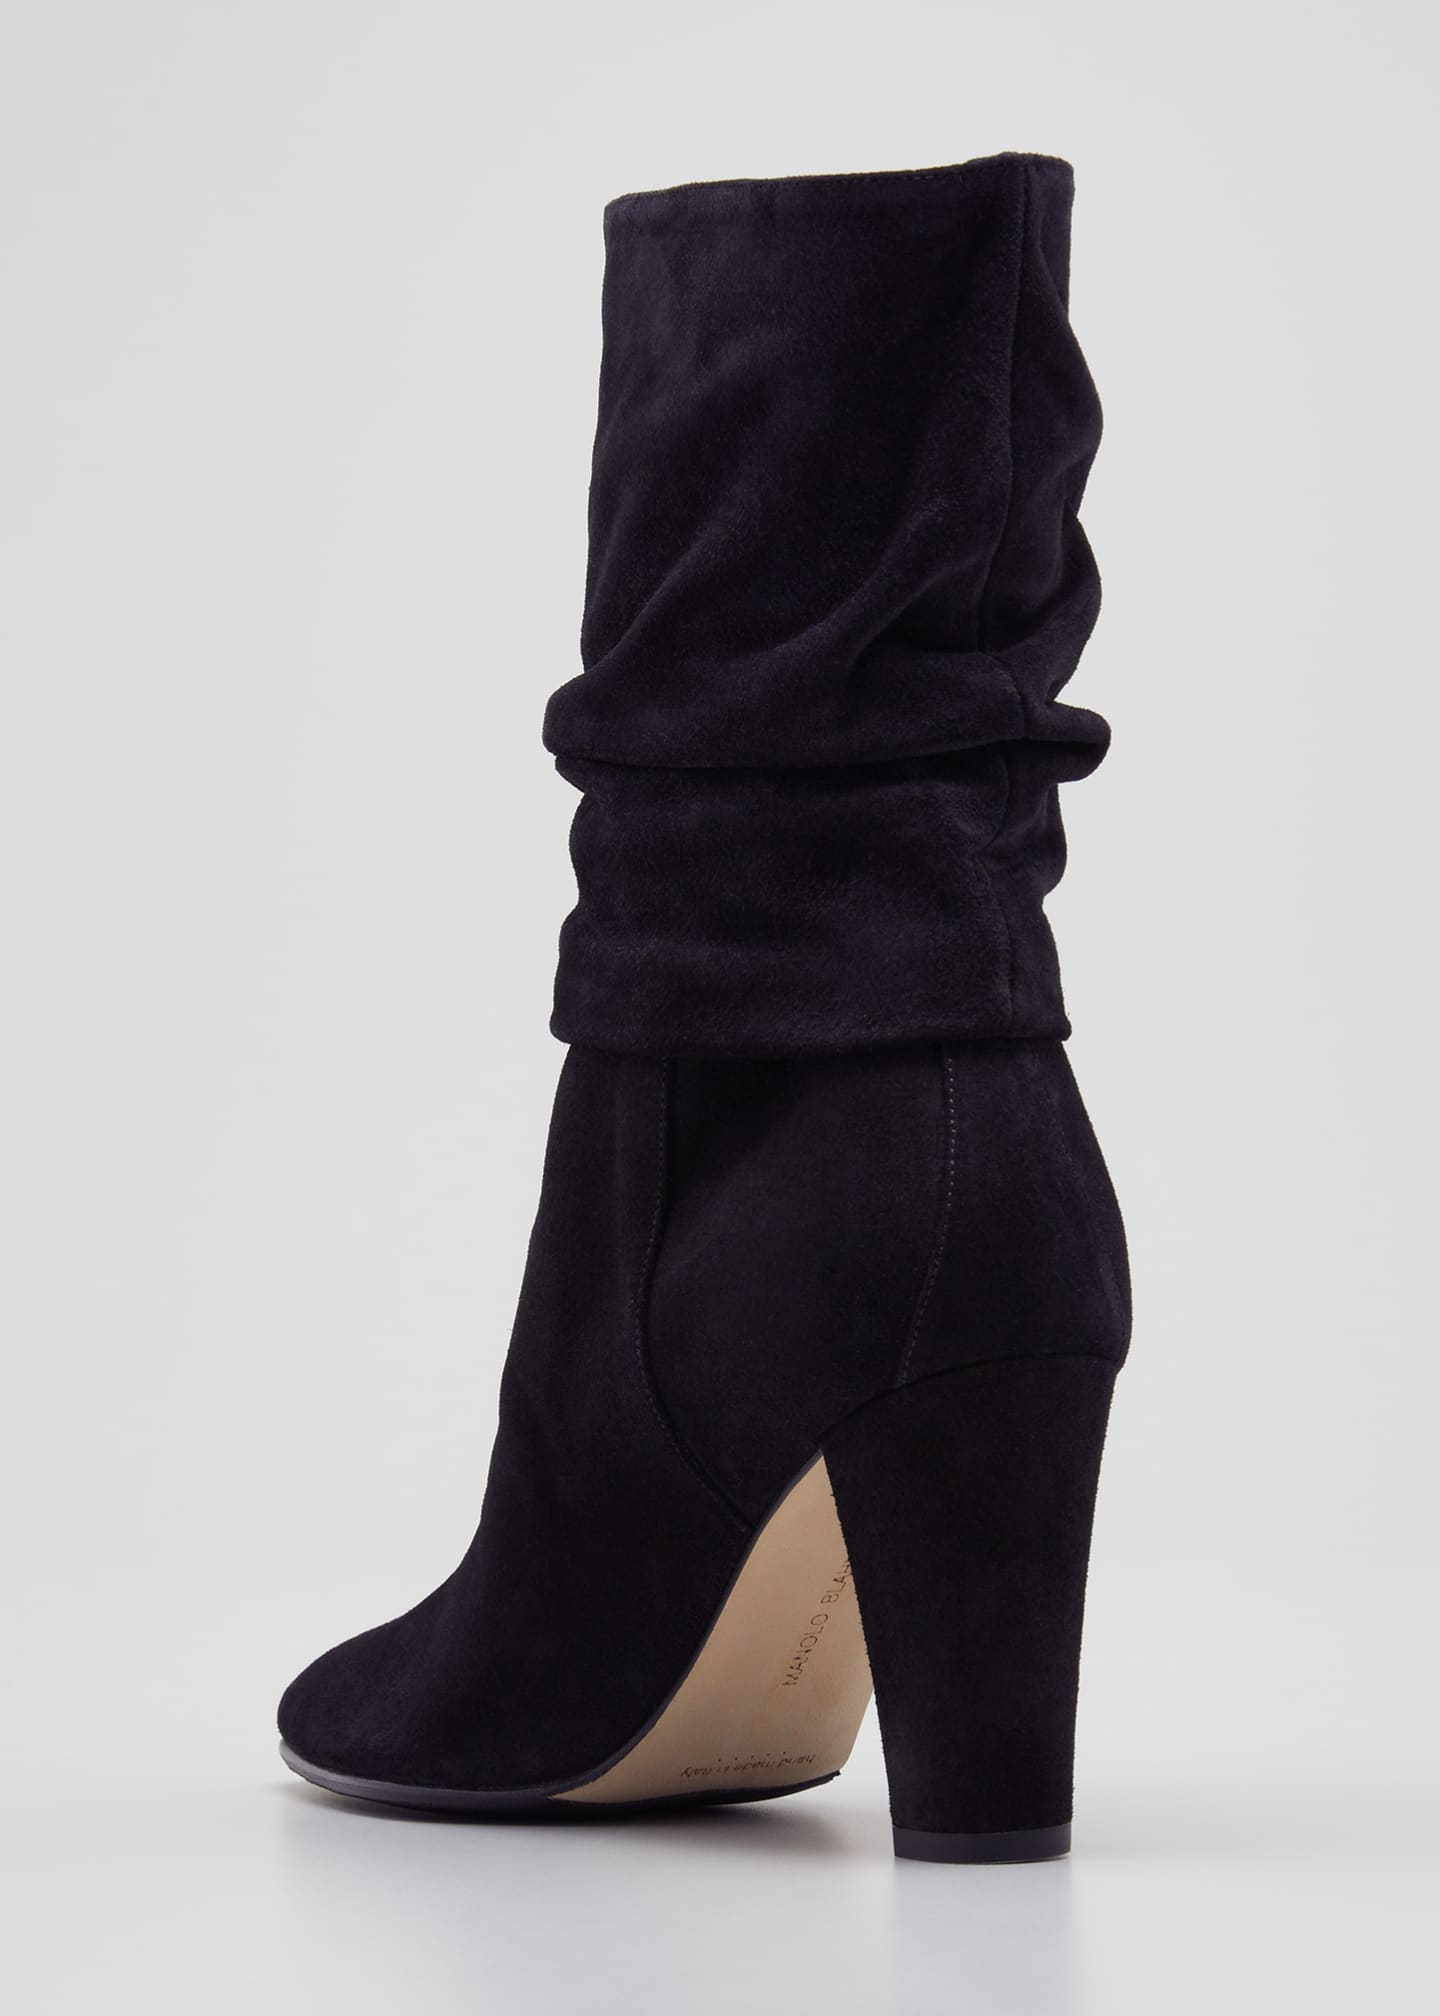 Image 2 of 3: Shushan 90mm Suede Scrunch Boots